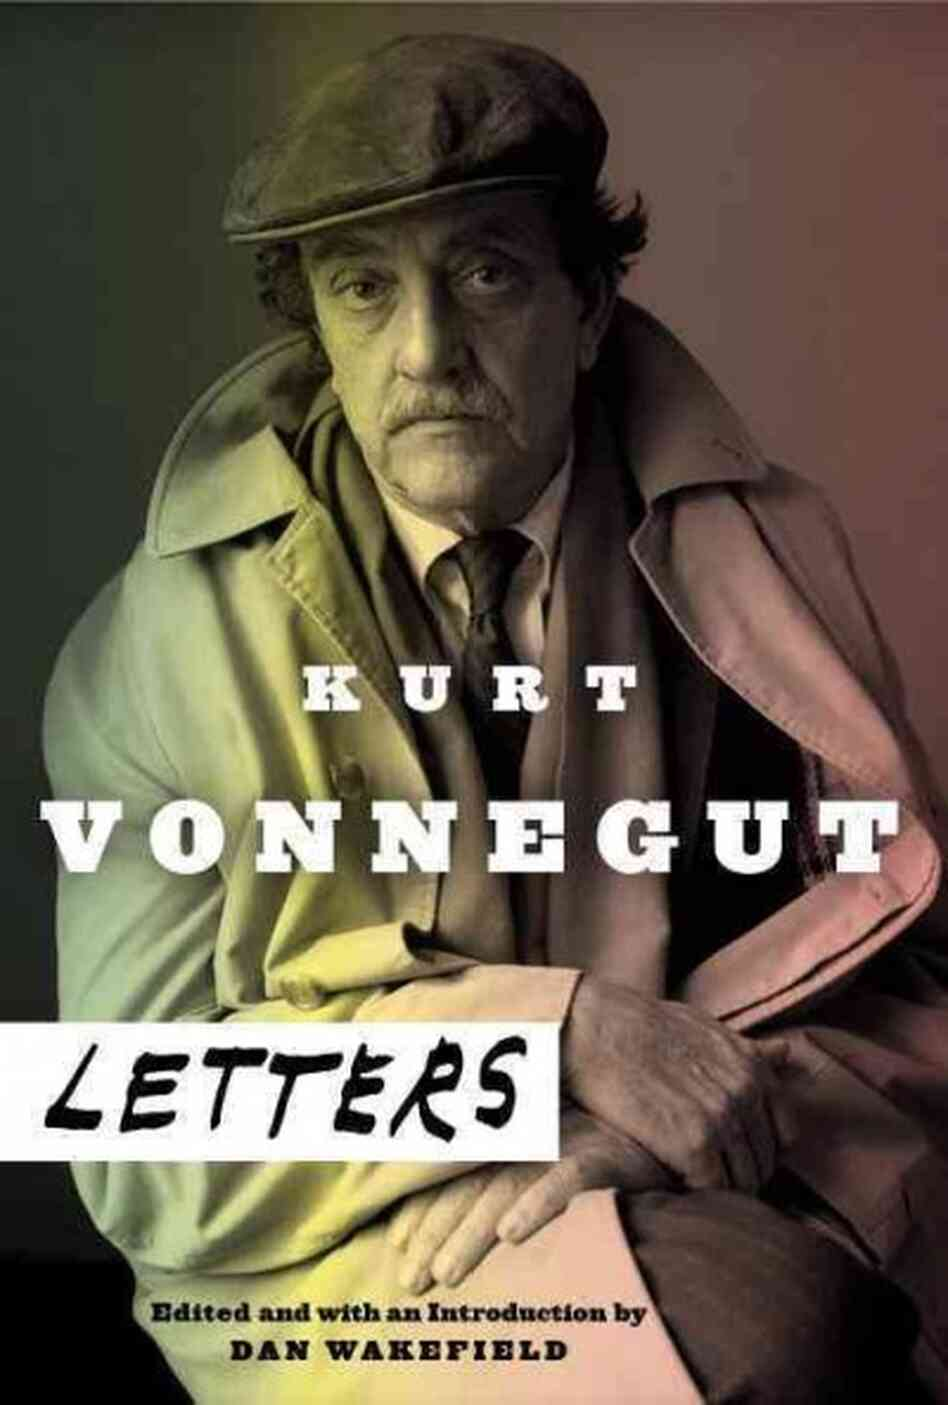 an introduction to the life of kurt vonnegut Get this from a library vonnegut in america : an introduction to the life and work of kurt vonnegut [jerome klinkowitz donald l lawler] -- a collection of essays examine kurt vonnegut's life and work, with a complete bibliography of works by and about vonnegut and a photo album of his life.